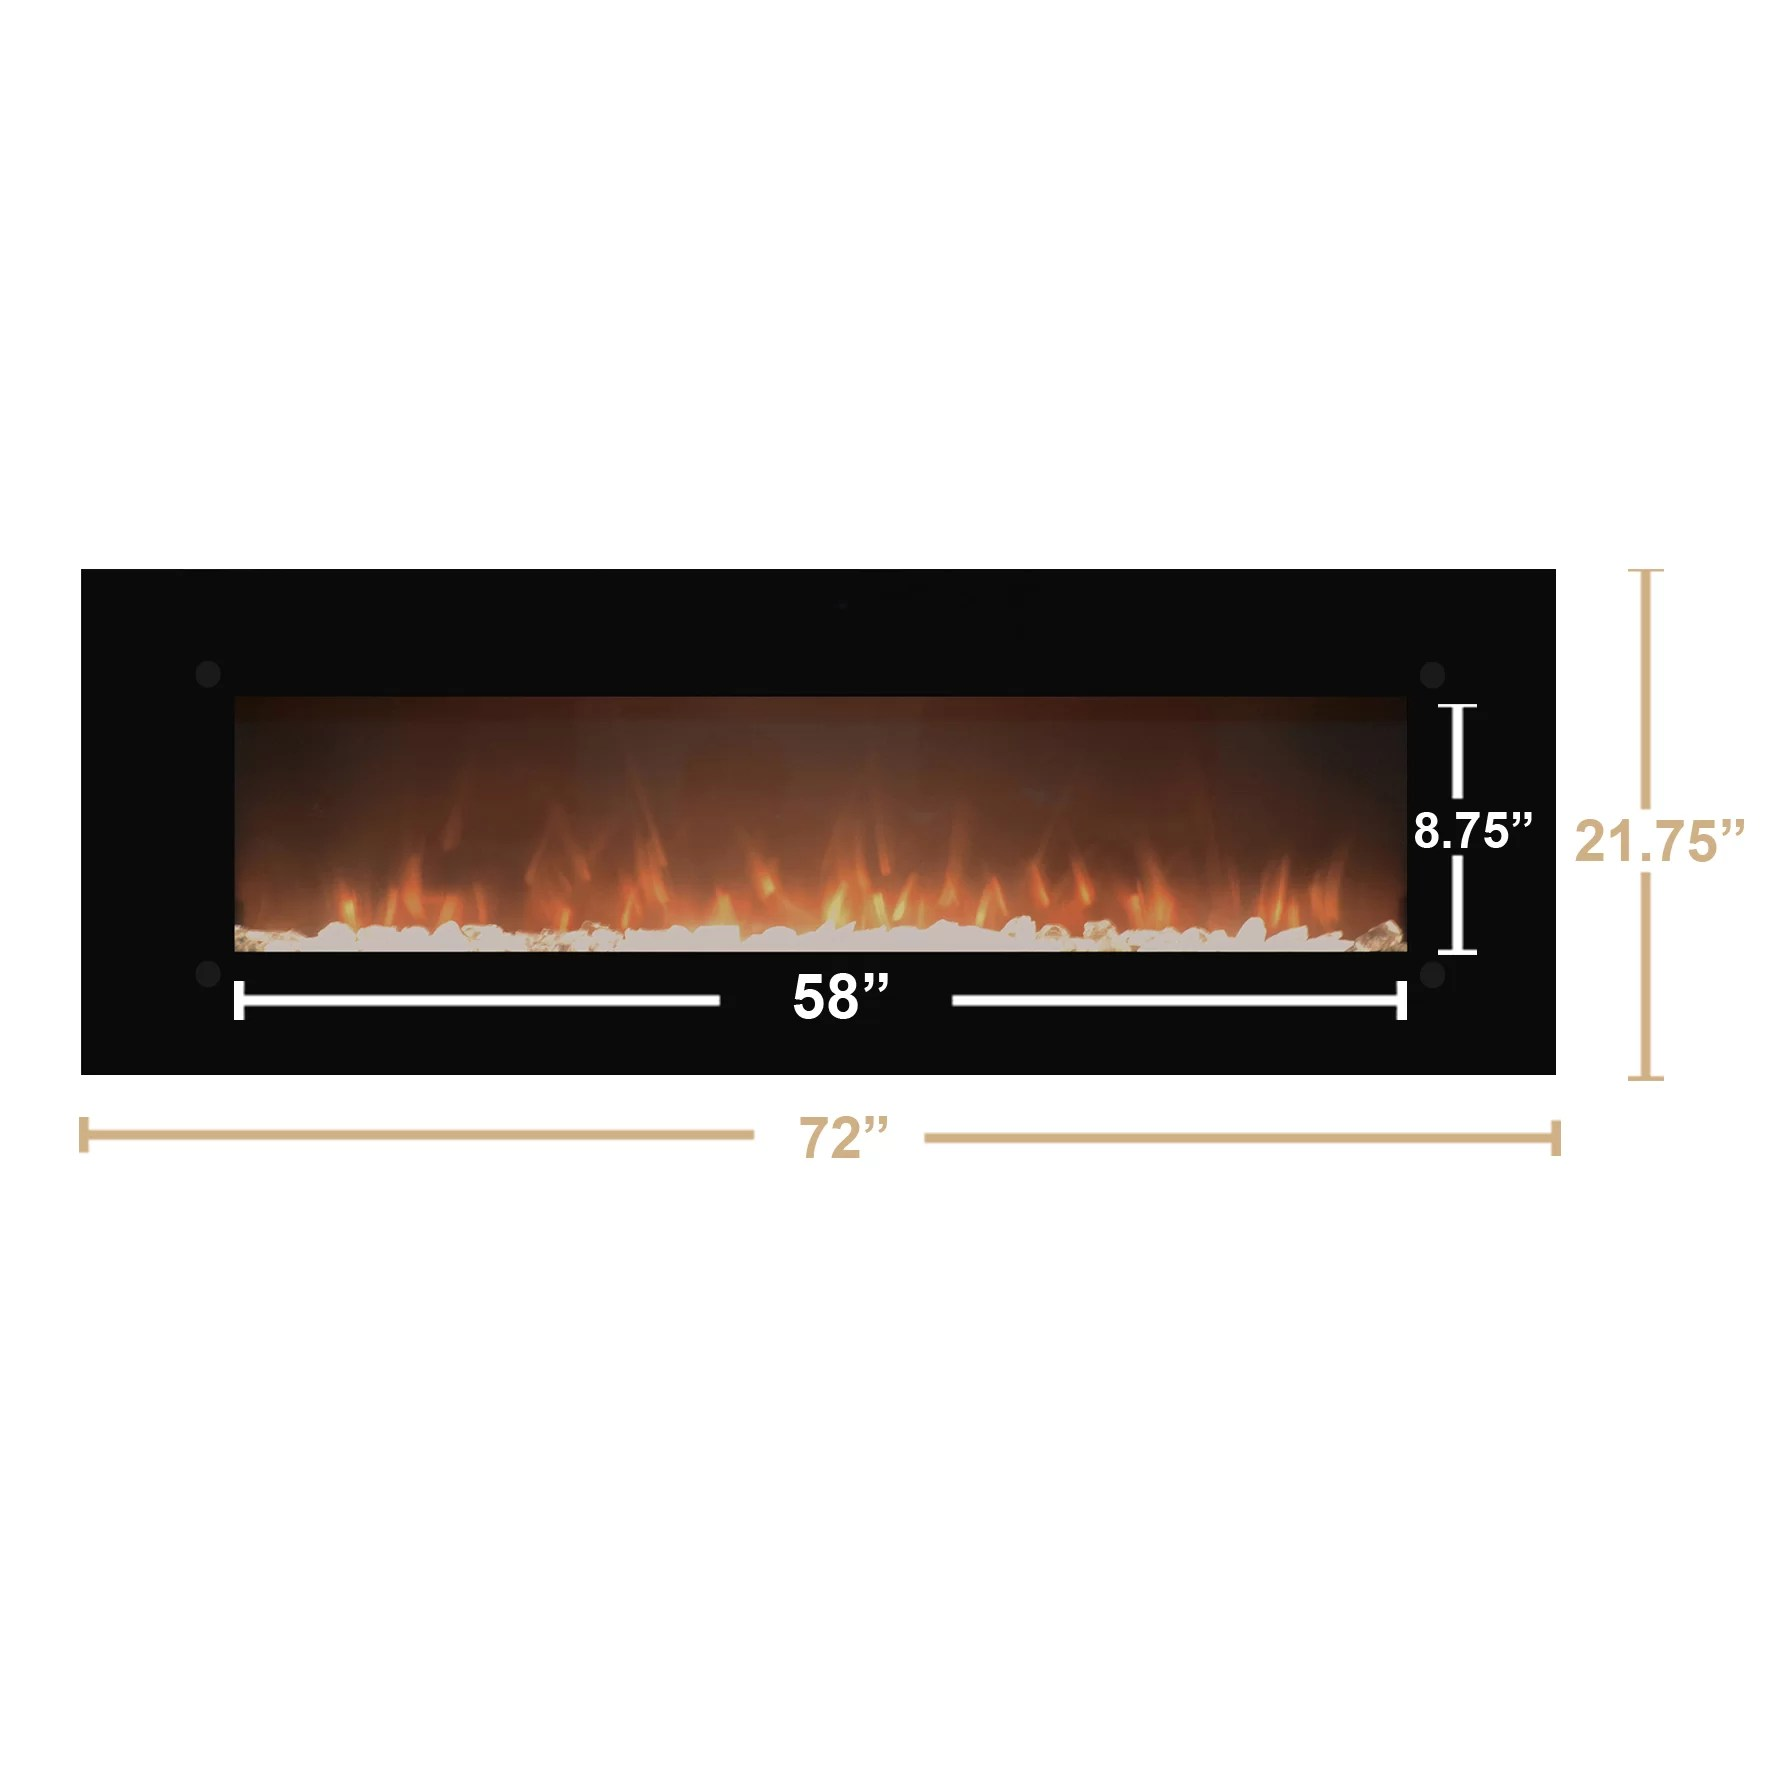 Touchstone OnyxXL Wall Mount Electric Fireplace & Reviews